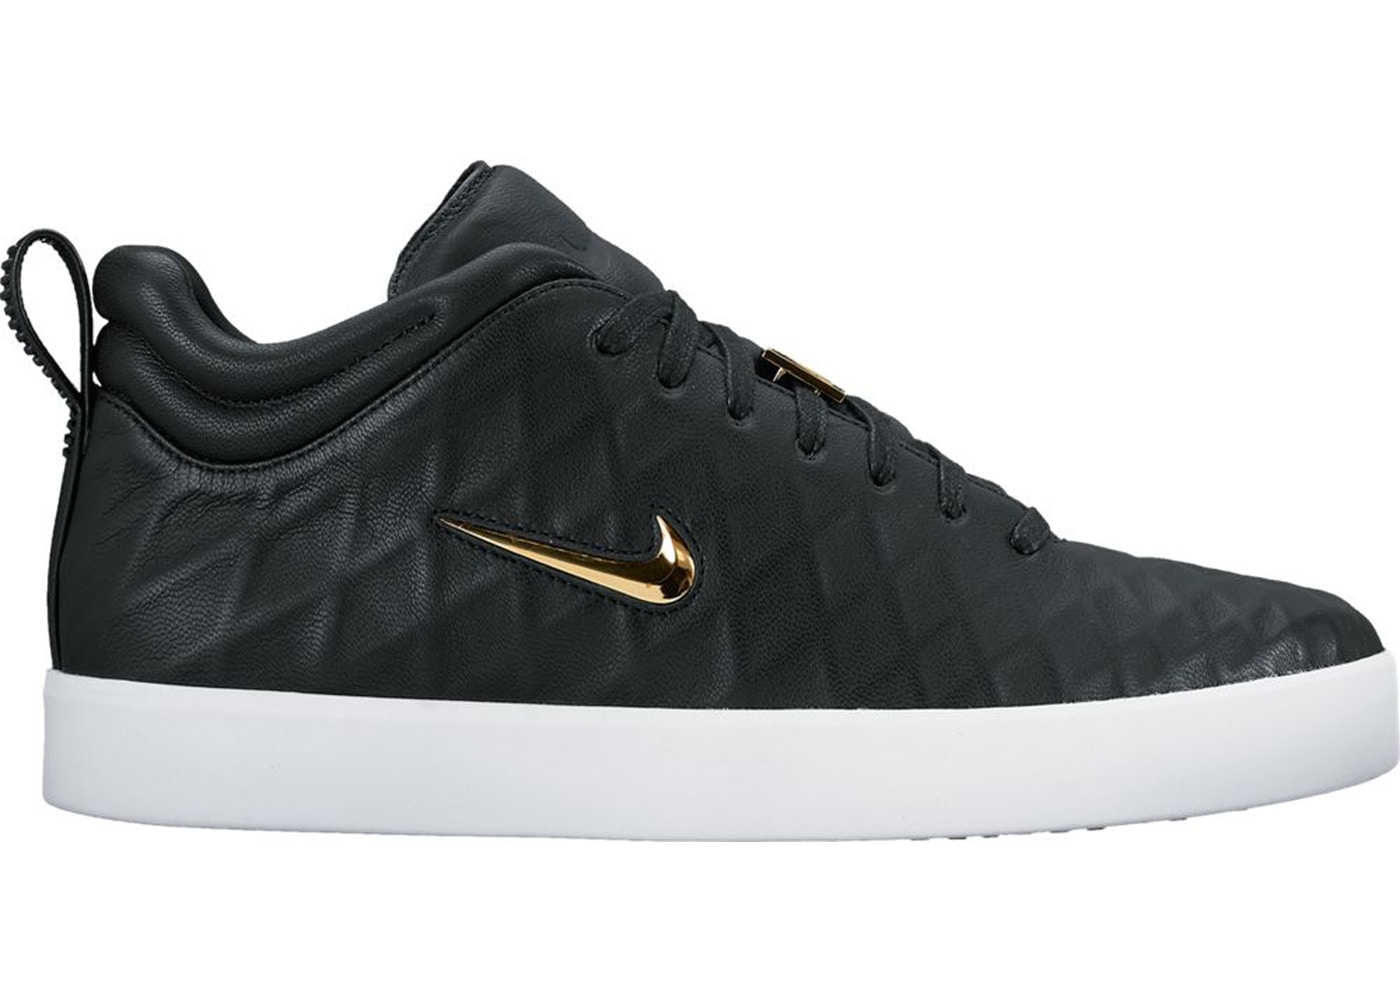 sale retailer 587f4 26742 Nike Tiempo Vetta 17 Black White Metallic Gold